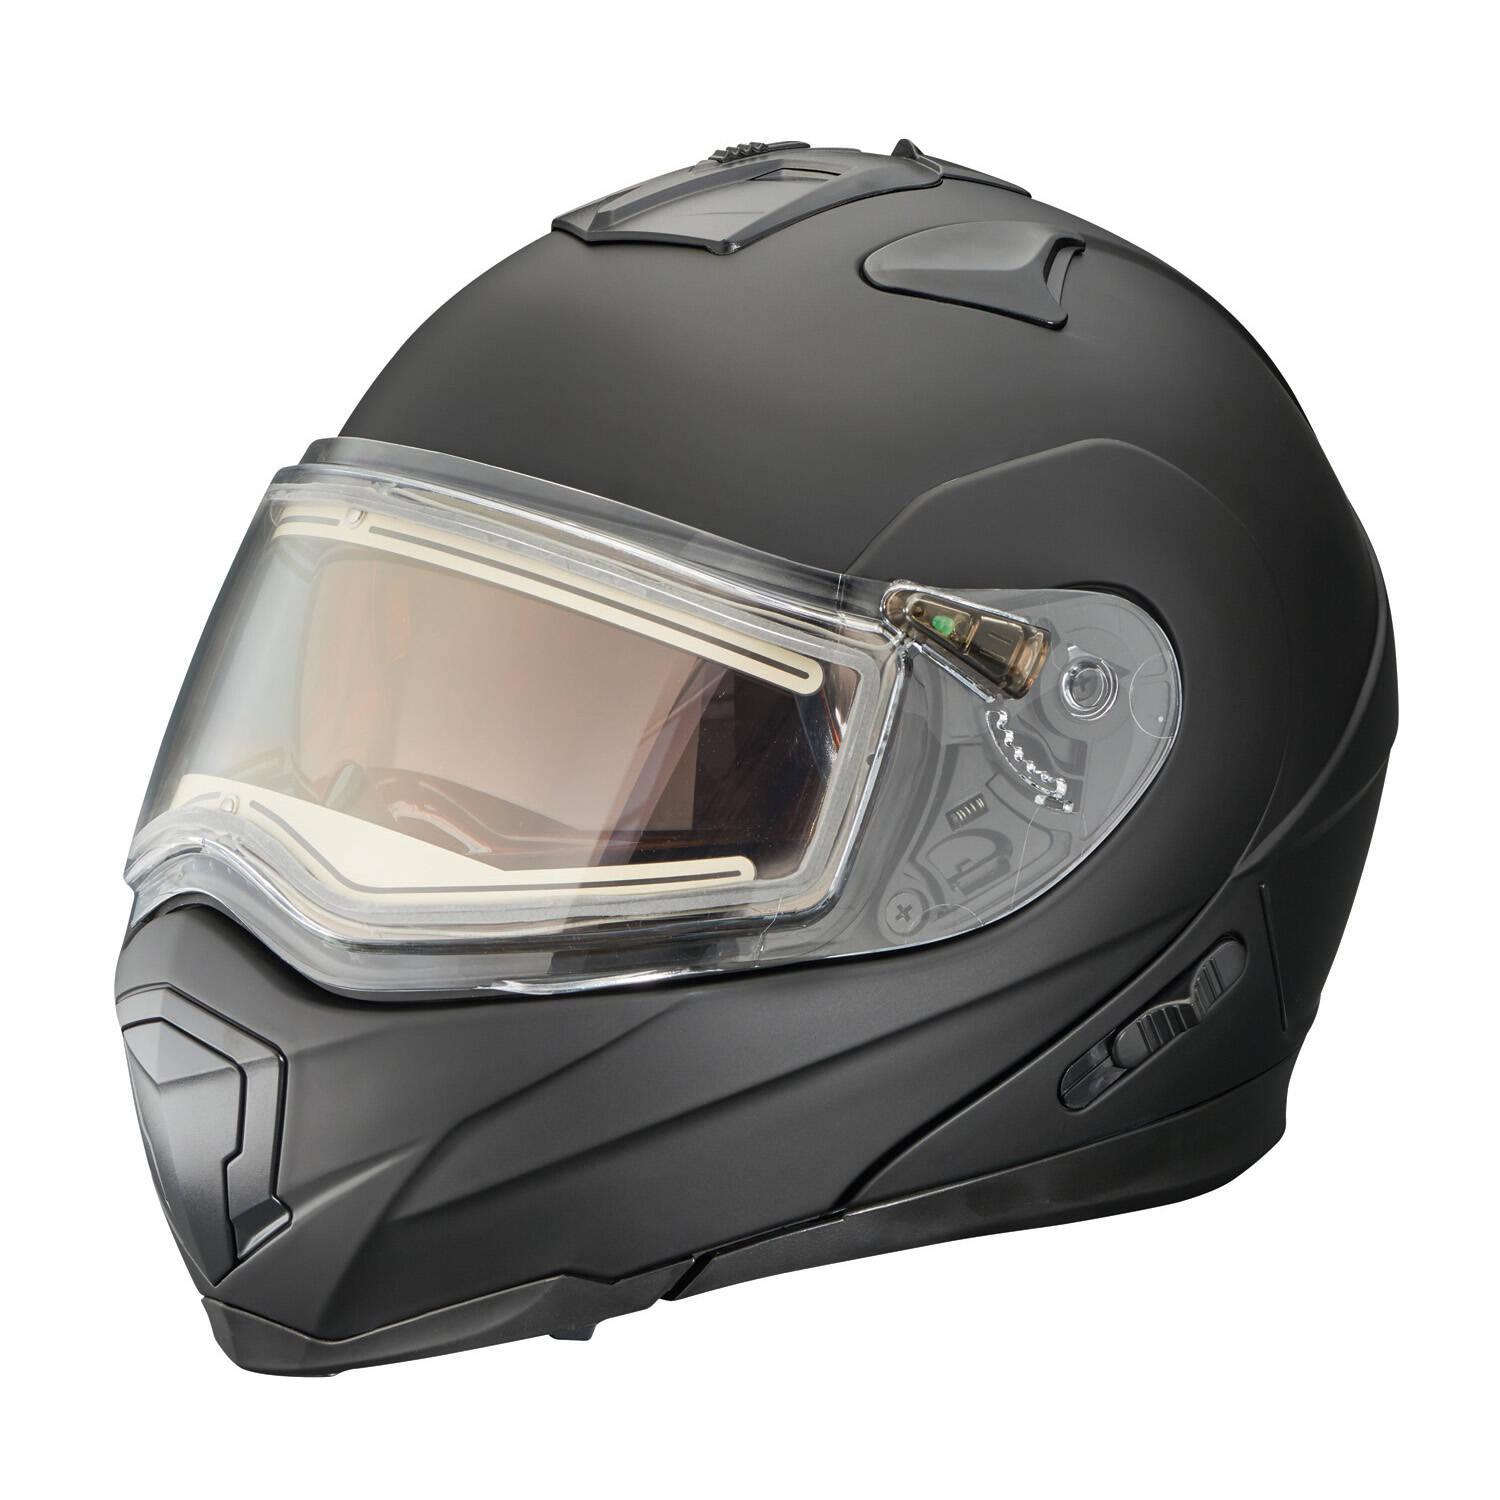 Modular 1.5 Adult Helmet with Electric Shield, Black Matte